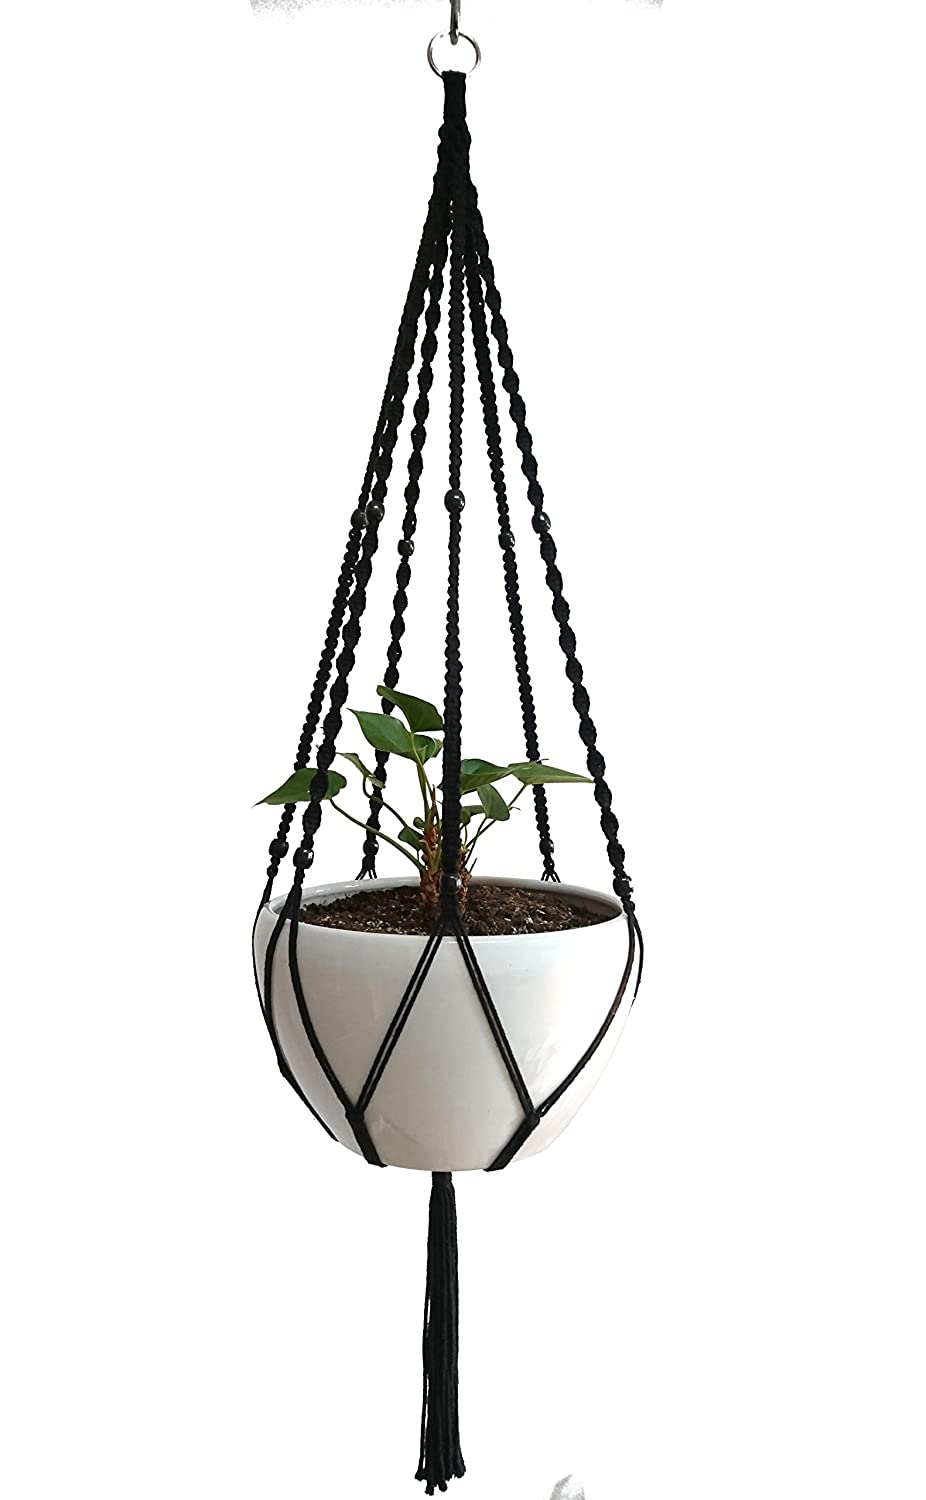 Plant Hanger Macrame Cotton 6 Legs 51 Inches in Tan and Green Color for Indoor Outdoor, Living Room, Kitchen, Deck, Patio, High and Low Ceiling with Size of 10-12 inches Without The Pot Black